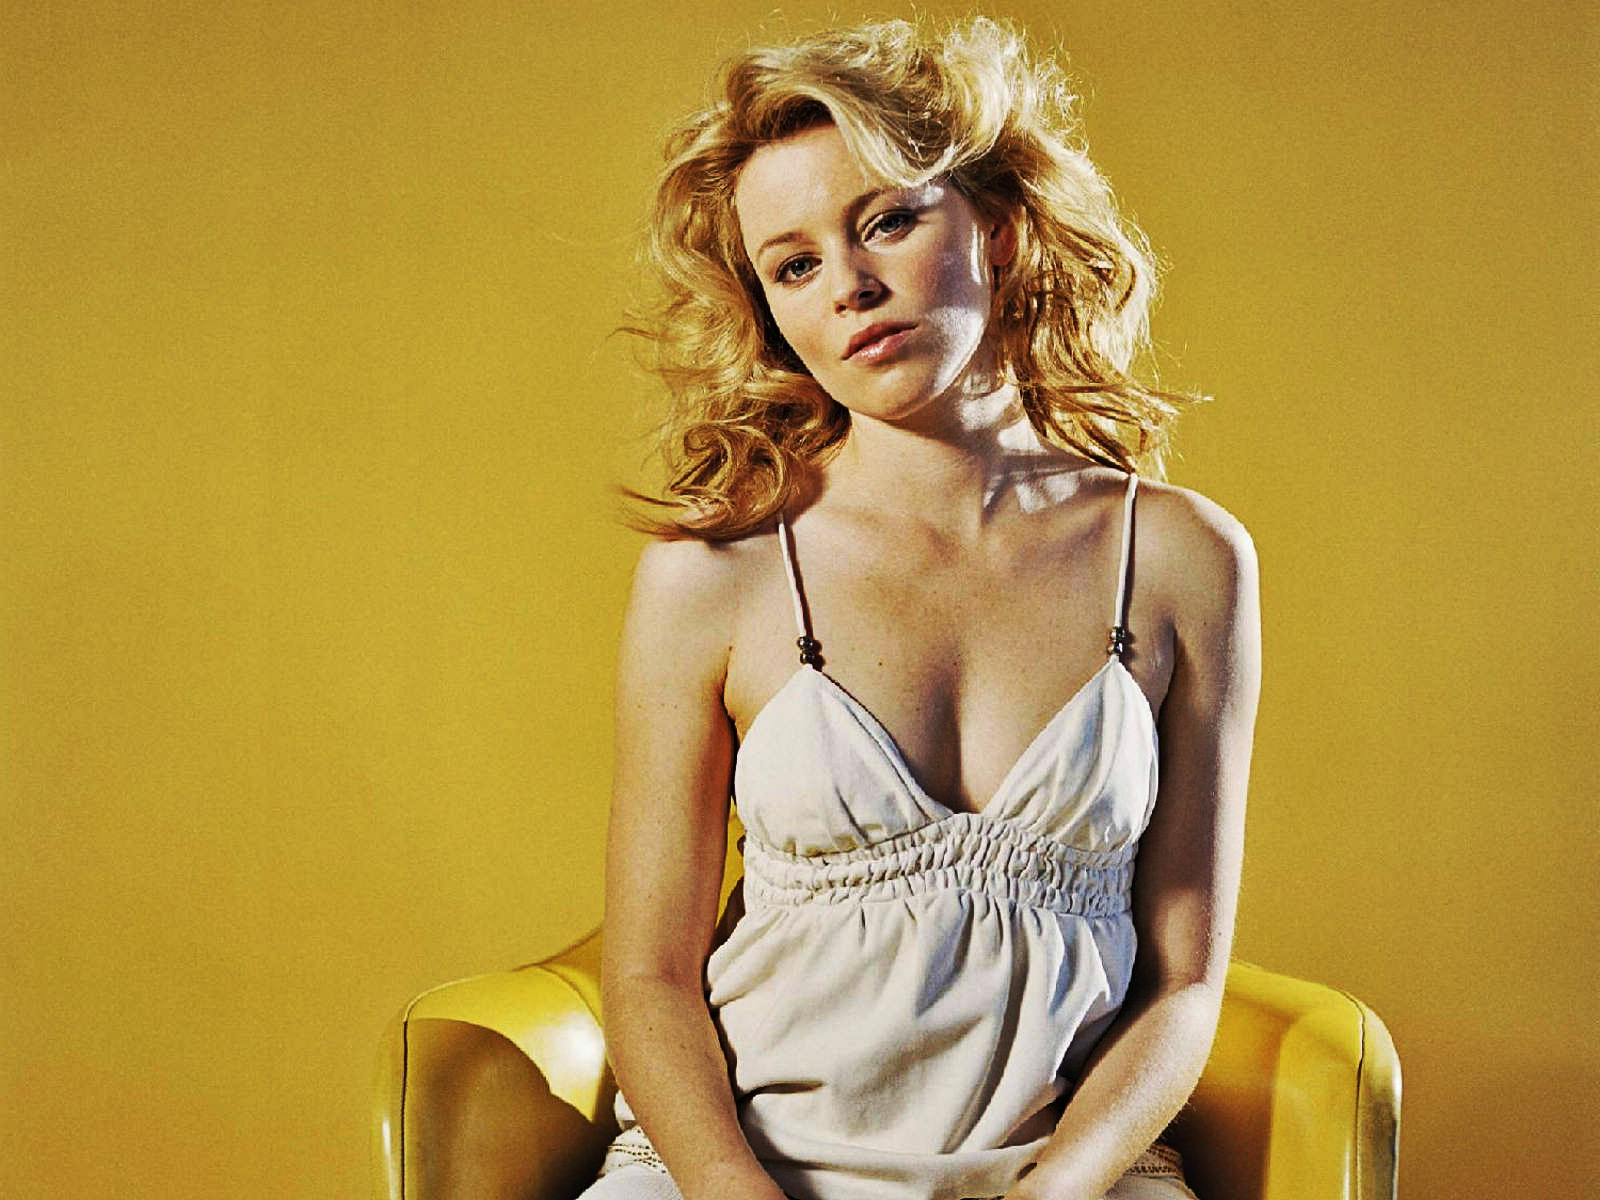 Elizabeth Banks Hot